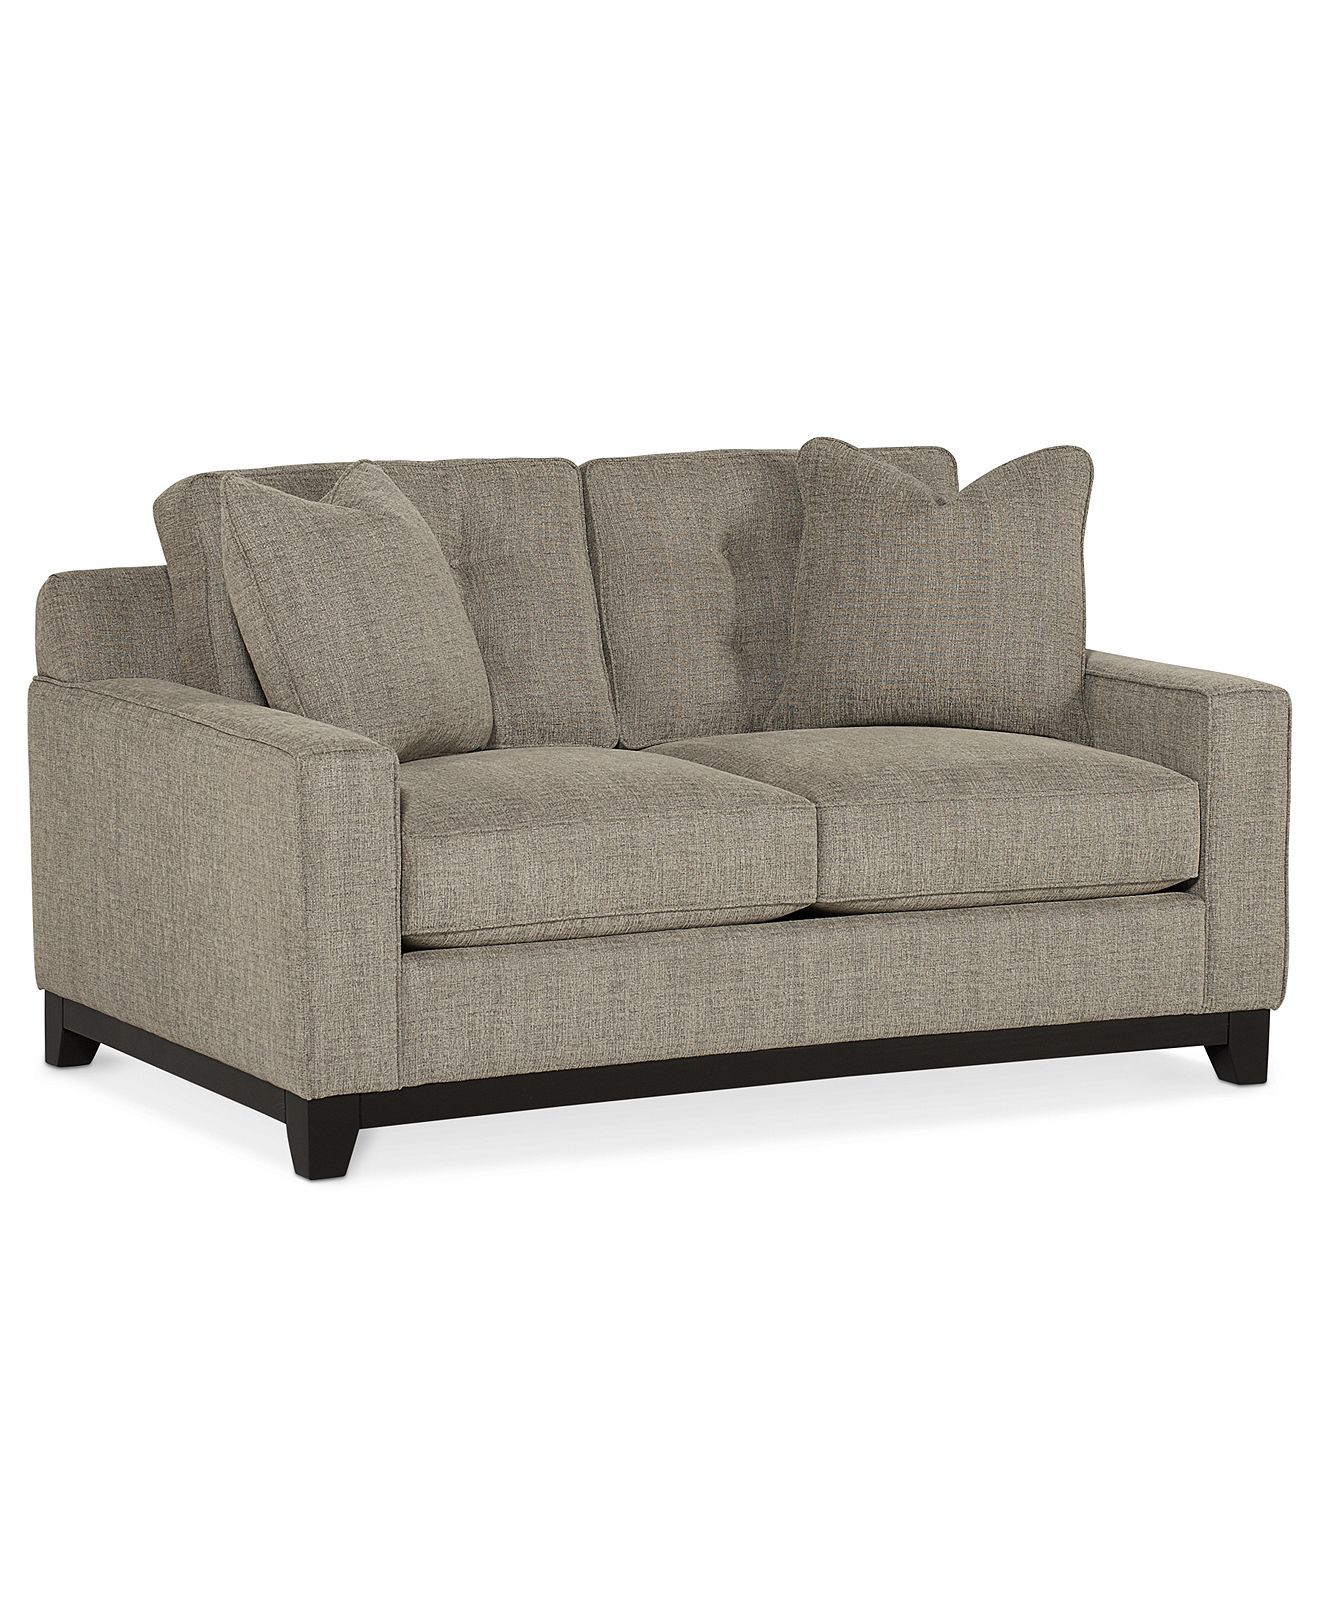 Sale 749 00clarke Fabric Loveseat 62 W X 38 D X 29 H Love Seat Furniture Loveseat Couch And Loveseat